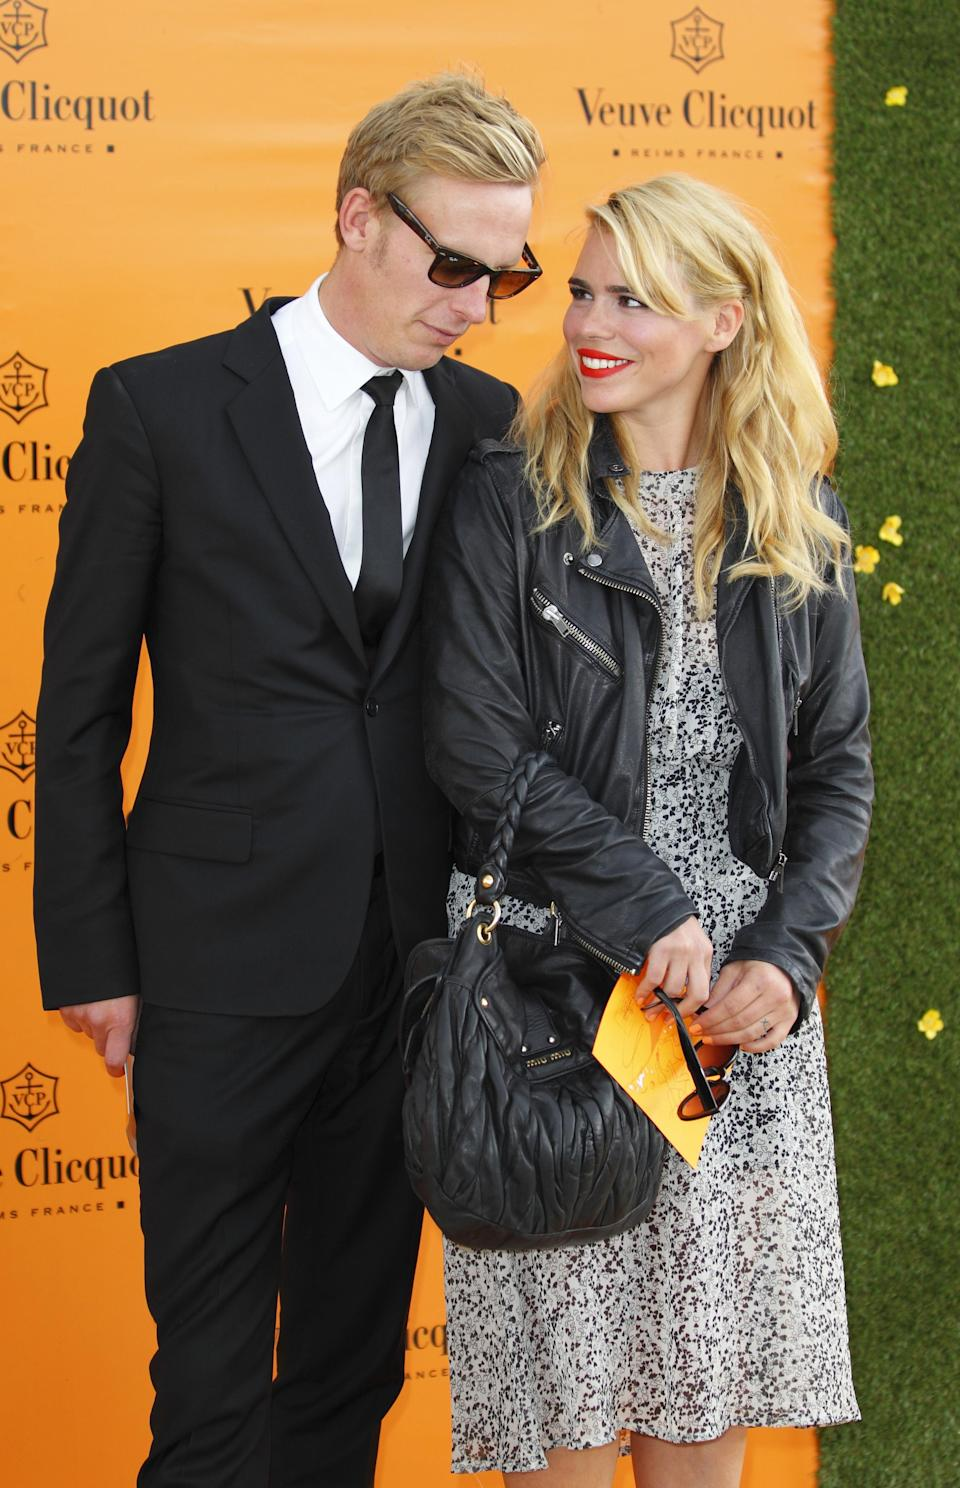 Actor Laurence Fox (left) and wife Billie Piper arrive to watch the Veuve Clicquot Gold Cup Final at Cowdray Polo Lawns in Midhurst, West Sussex.